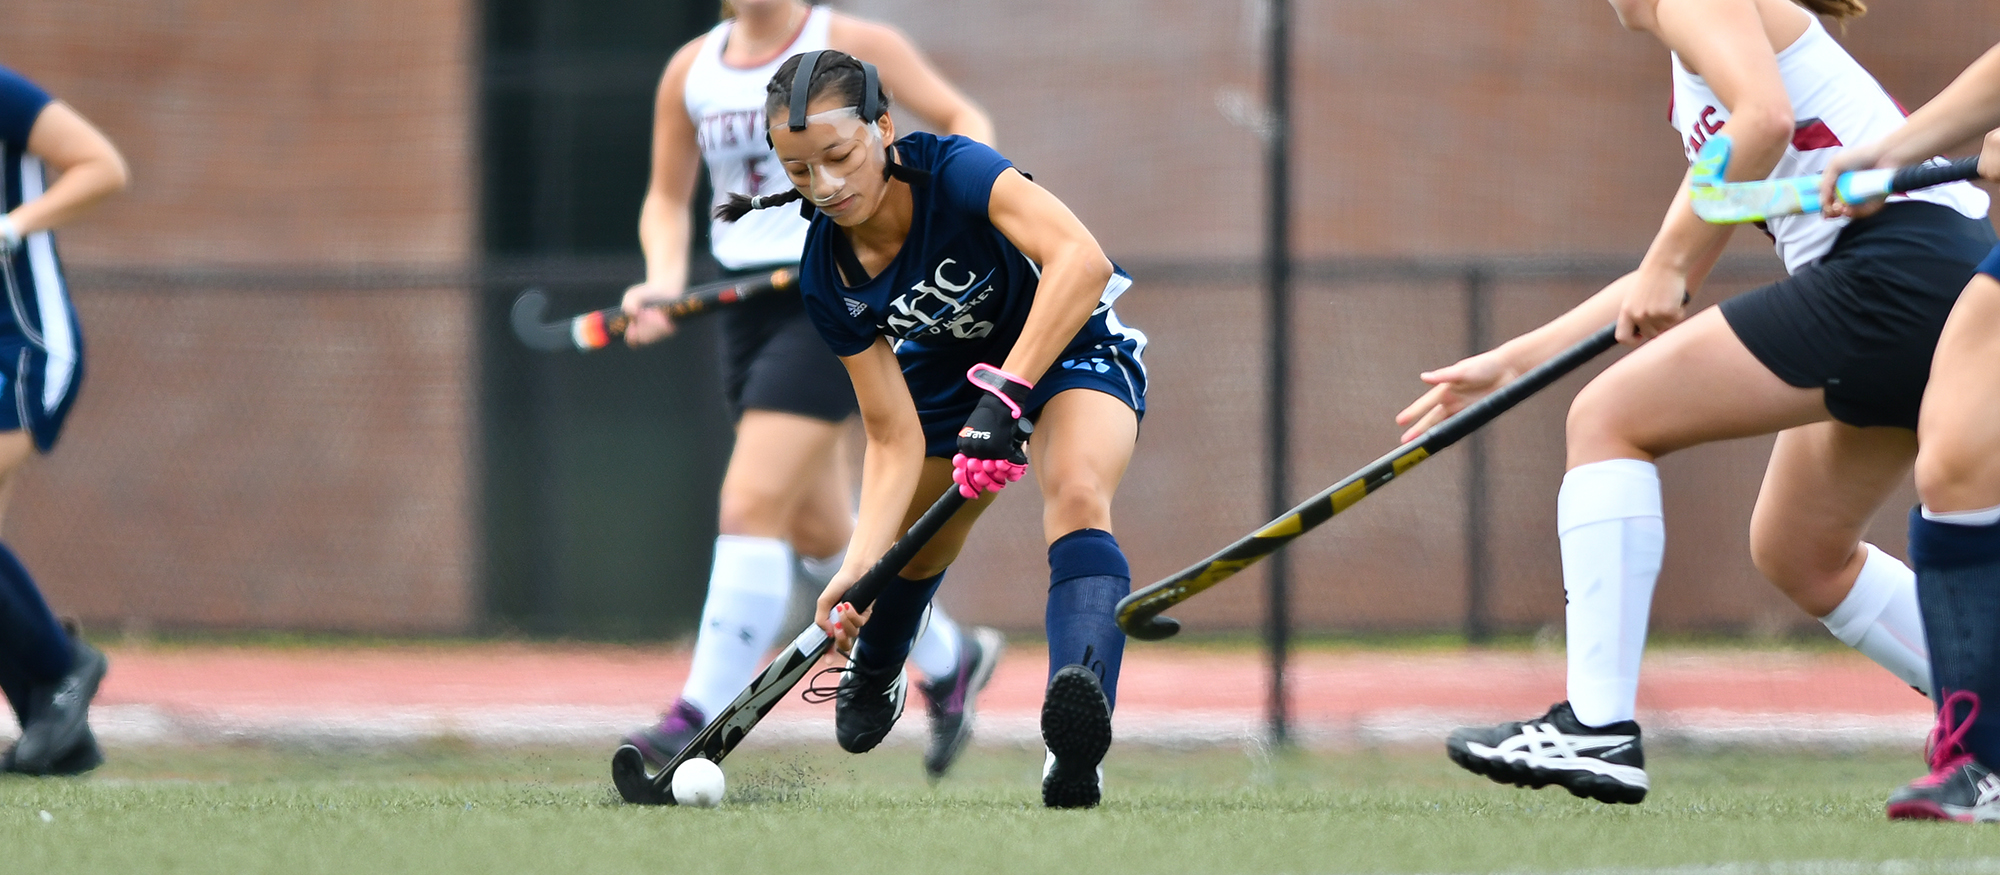 Wesleyan Slips Past Field Hockey, 5-2, in Non-Conference Play